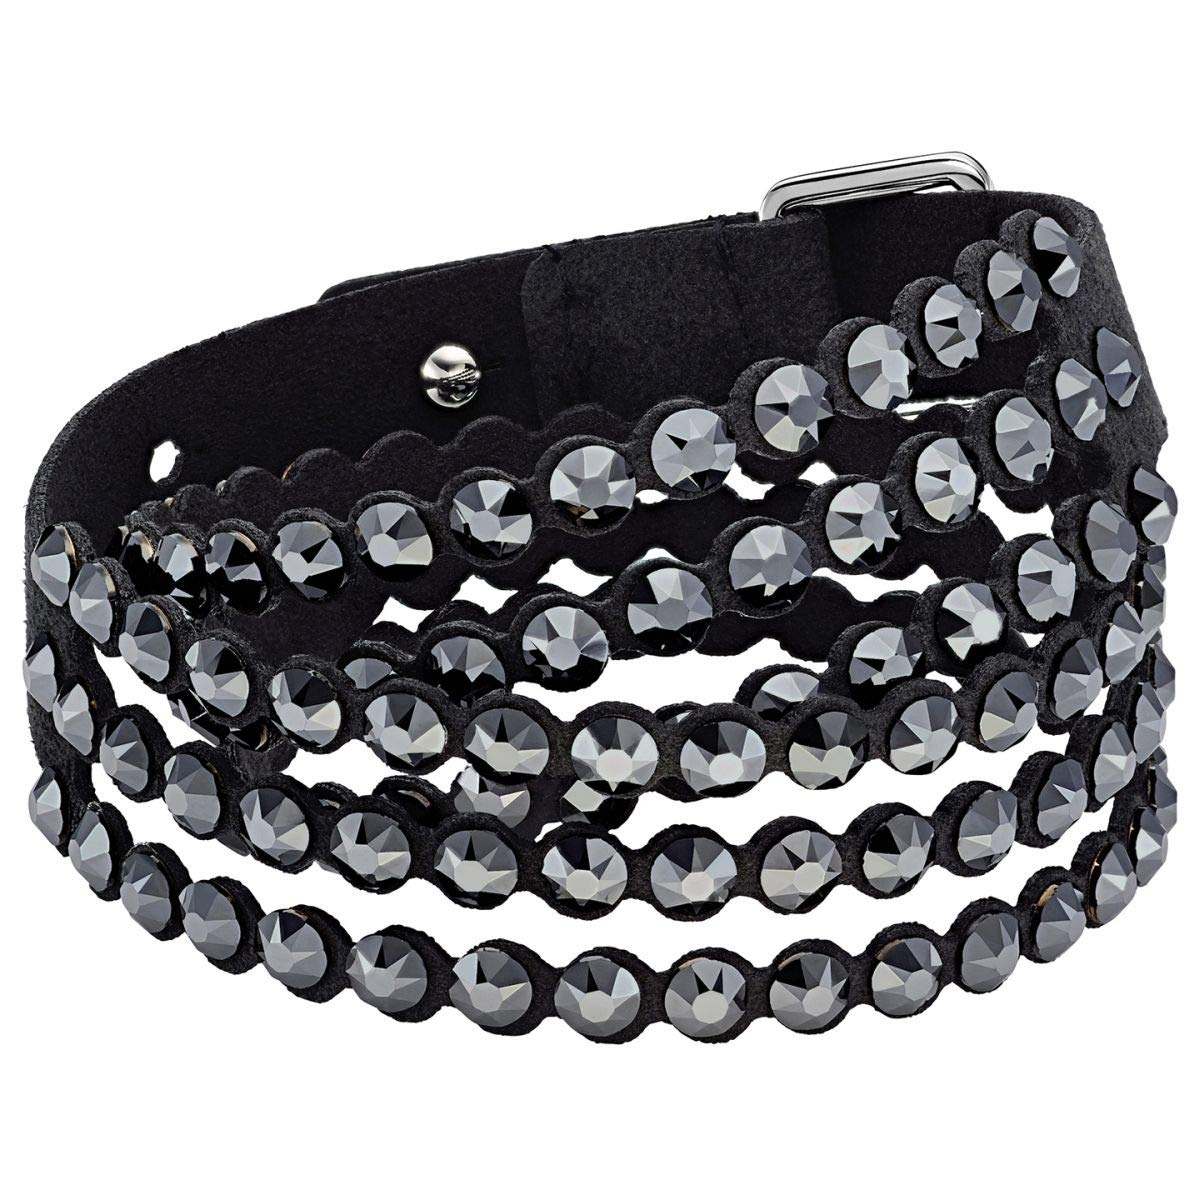 SWAROVSKI Swapower Slake Bracelet Black Oth Medium by SWAROVSKI